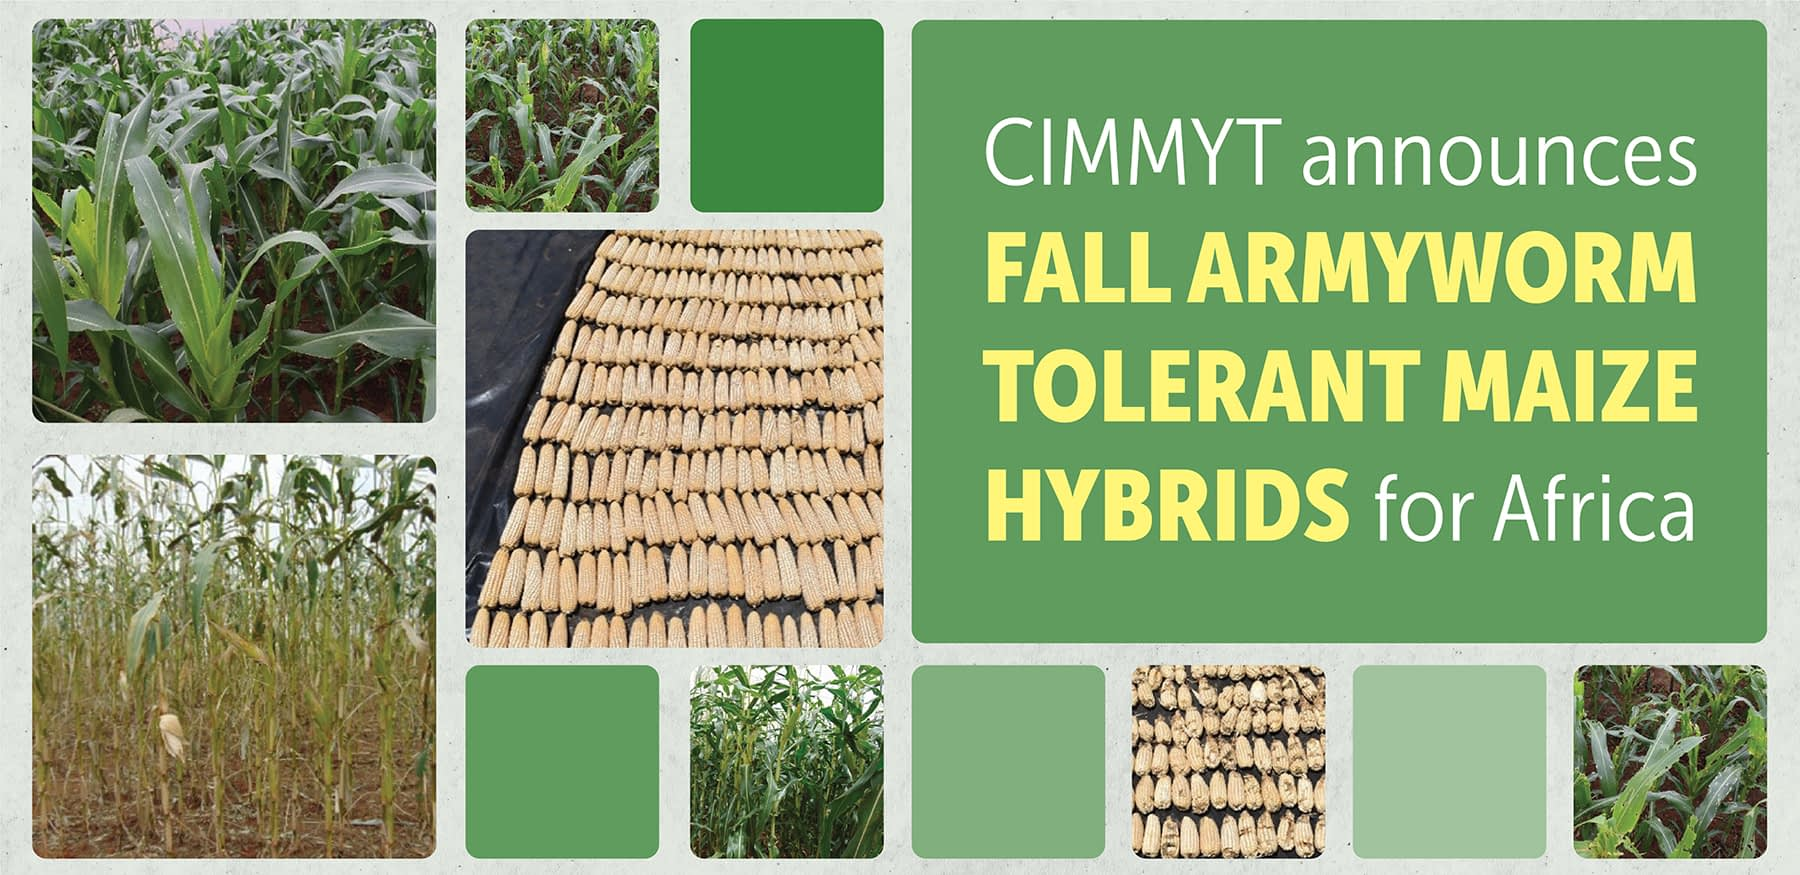 CIMMYT announced fall armyworm-tolerant maize hybrids for Africa.